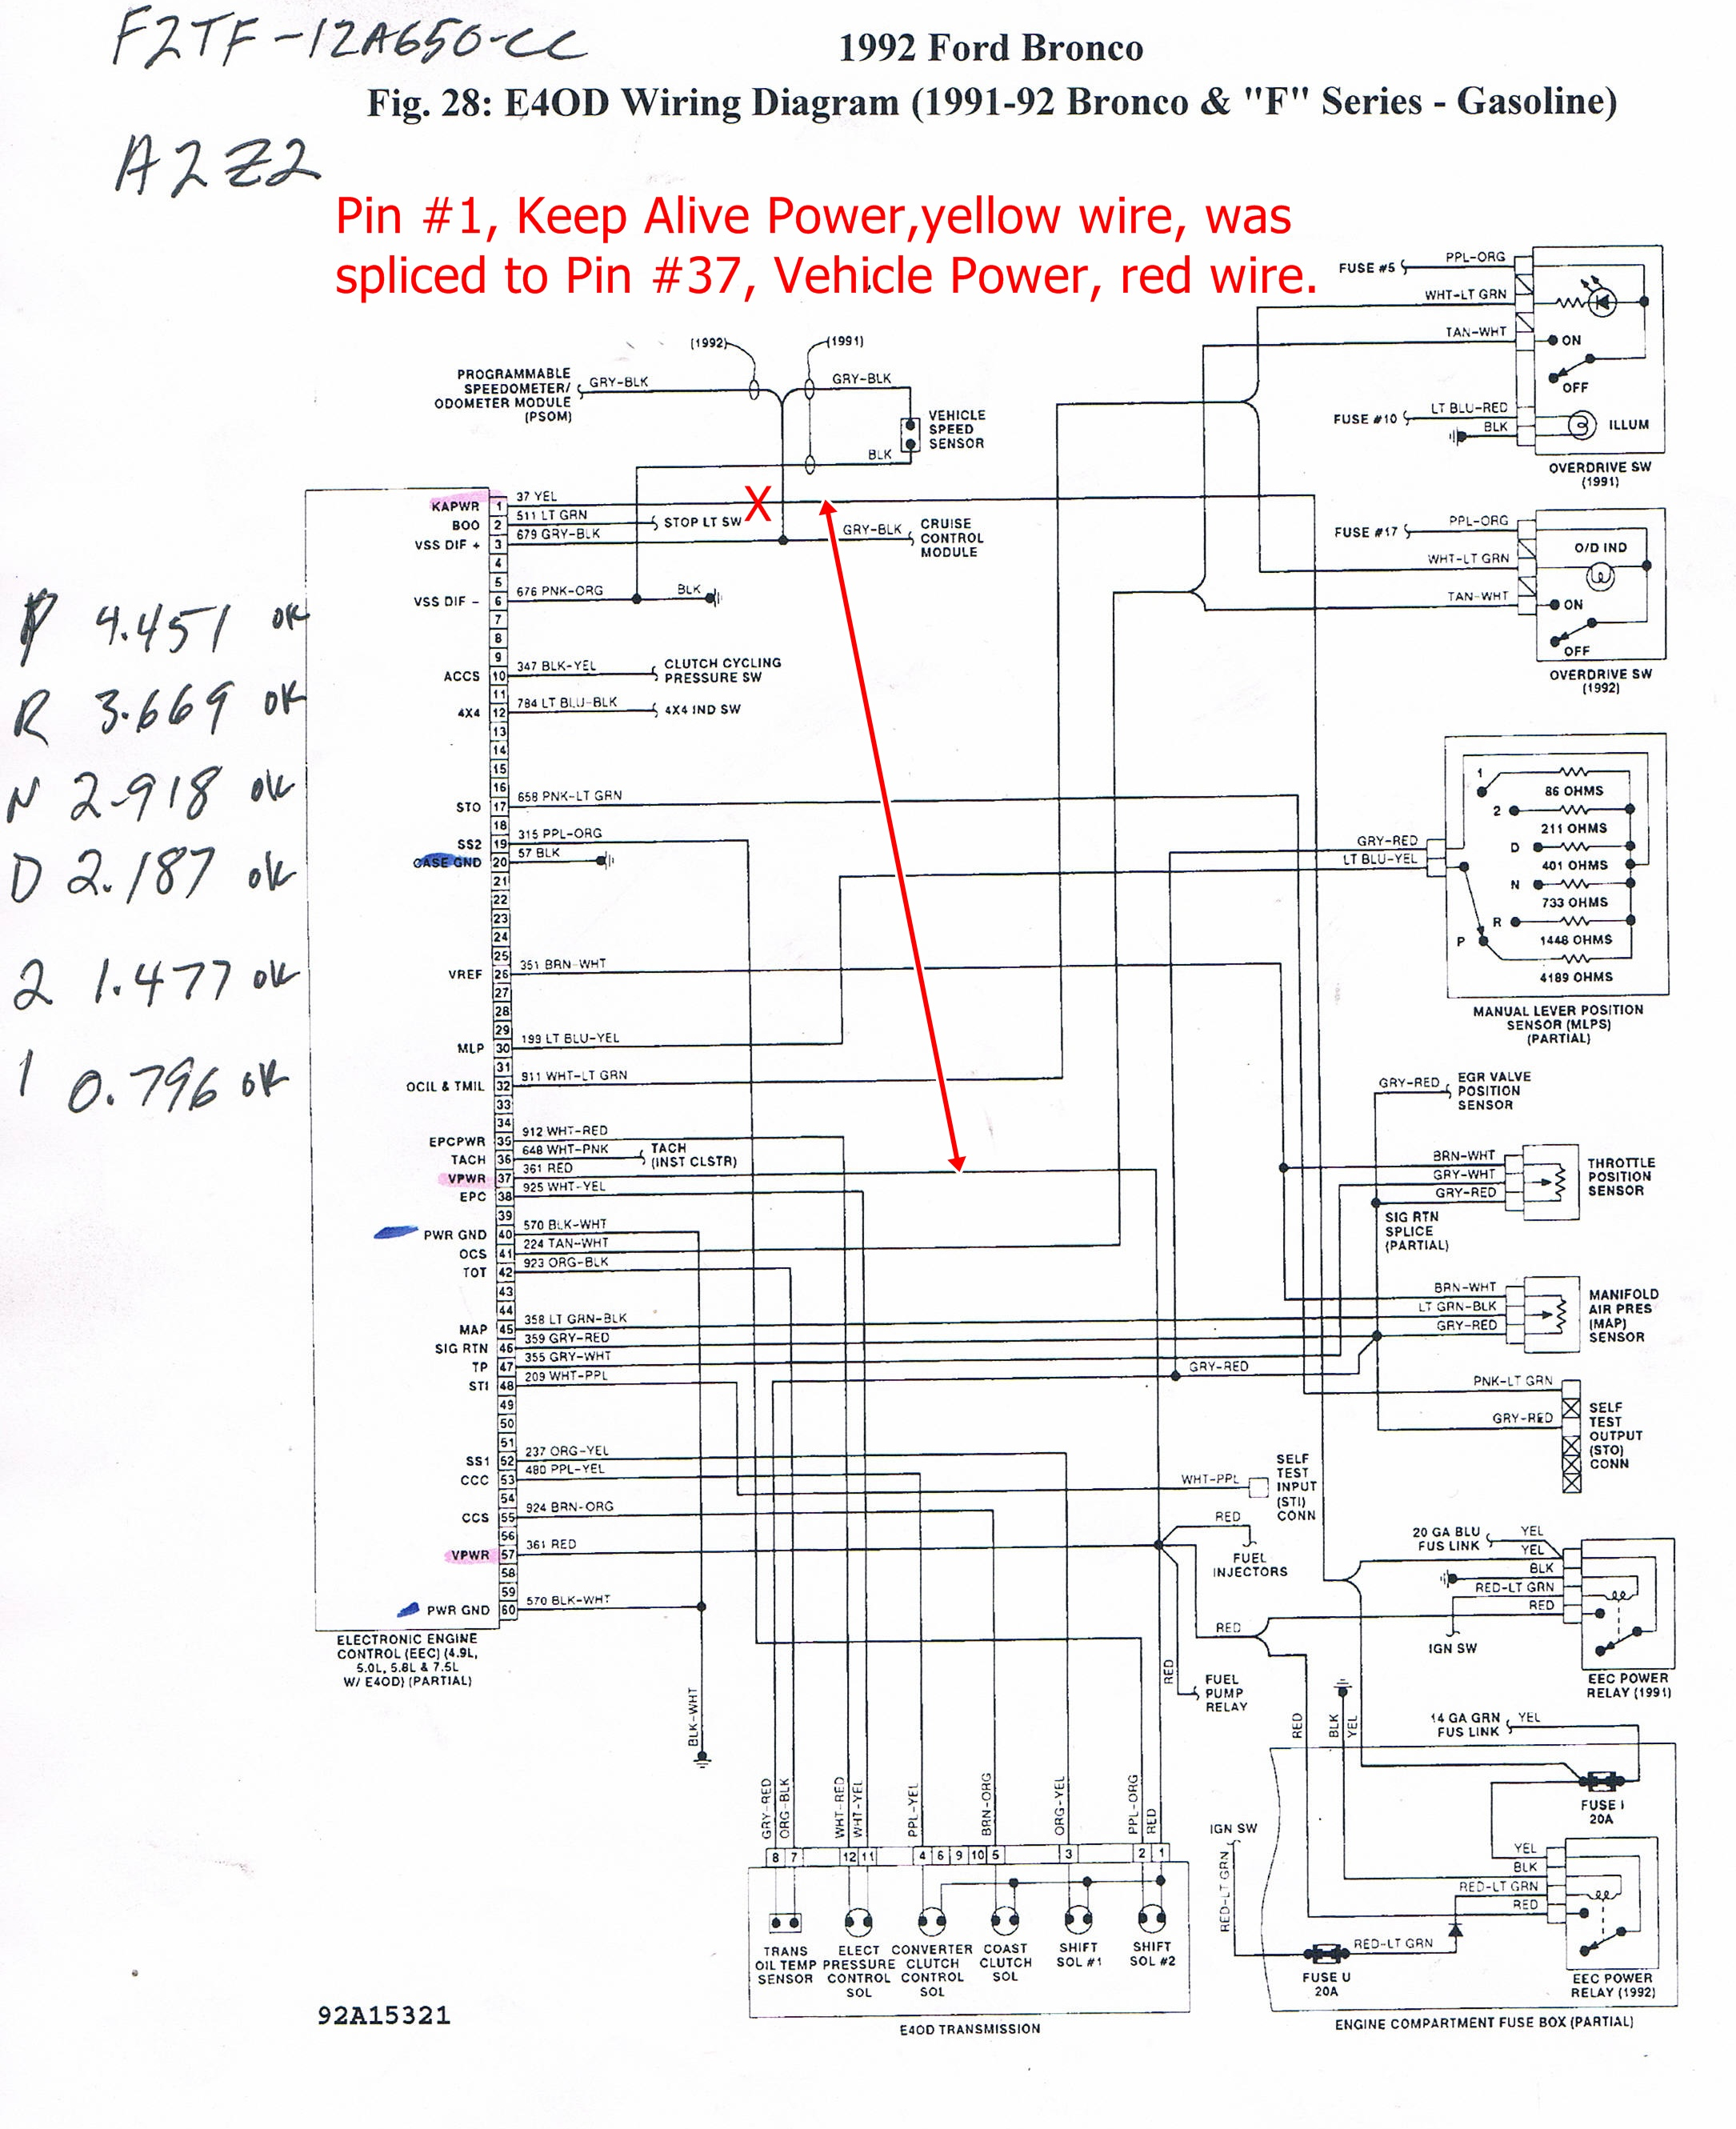 WRG-0325] Toyota 4runner Fuse Box Location And Diagram How To on 98 4runner dash, 98 4runner spark plugs, 98 4runner headlights, 98 4runner door, 98 4runner ignition switch, 98 4runner brakes, 98 4runner fuel filter, 98 4runner repair manual, 98 4runner alternator, 98 4runner thermostat, 98 4runner antenna, 98 4runner engine, 98 4runner fuel pump relay, 98 4runner cruise control,